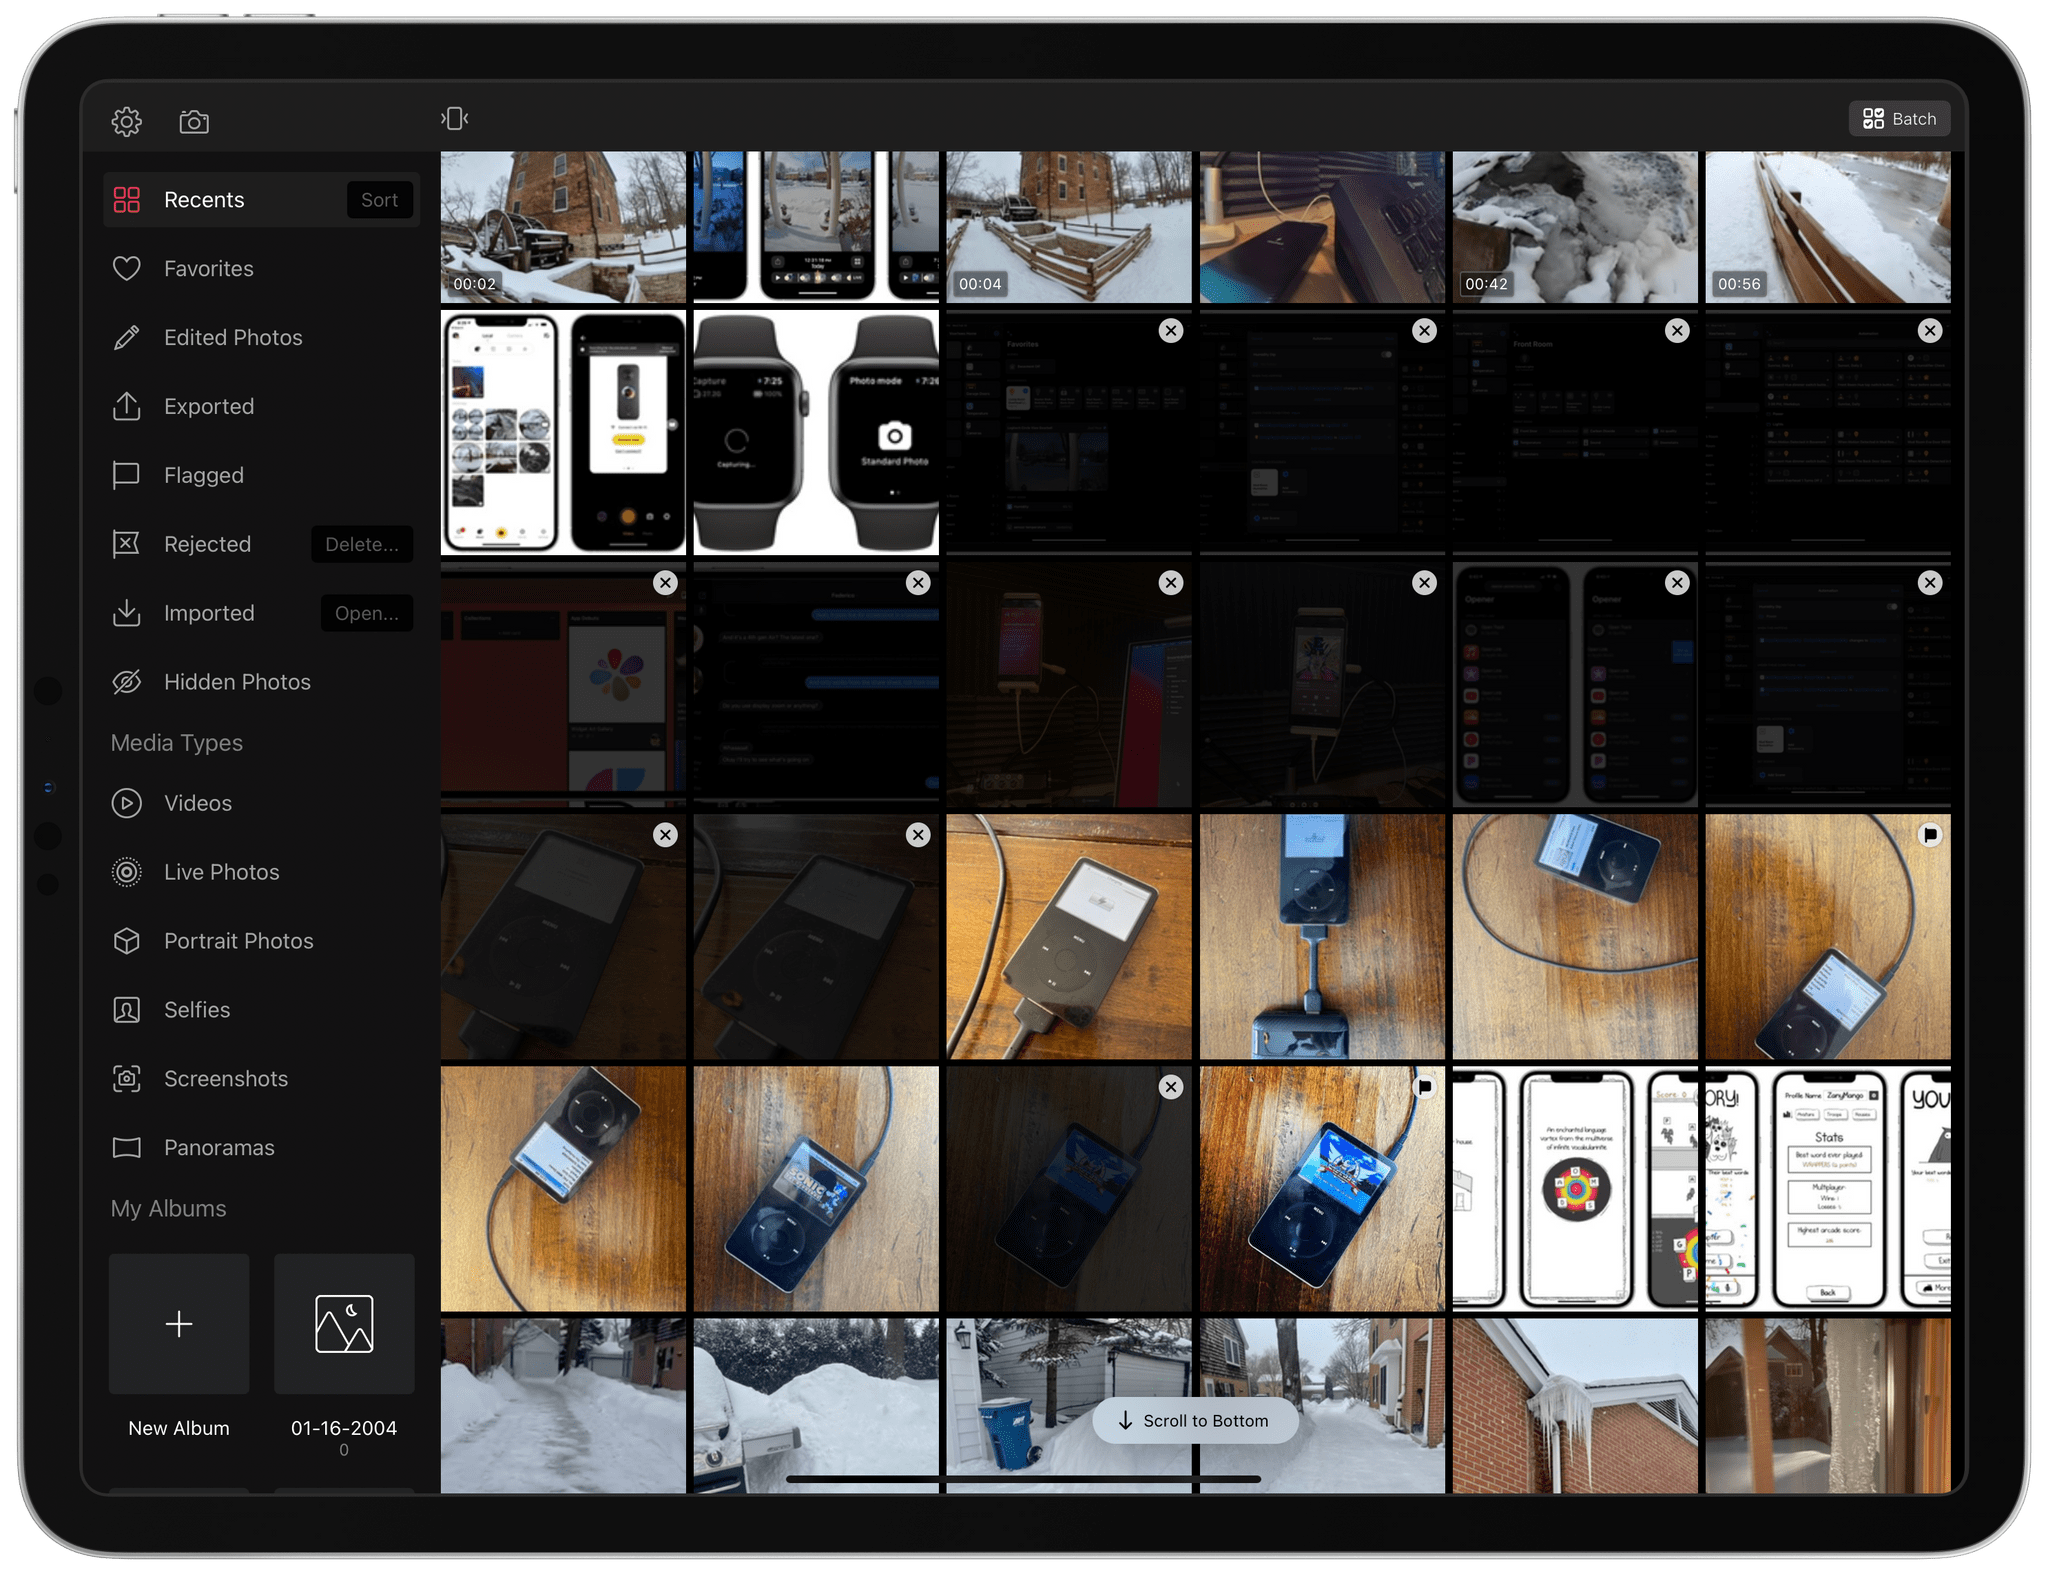 Rejected images are dimmed to help you focus on the rest of your photo library.